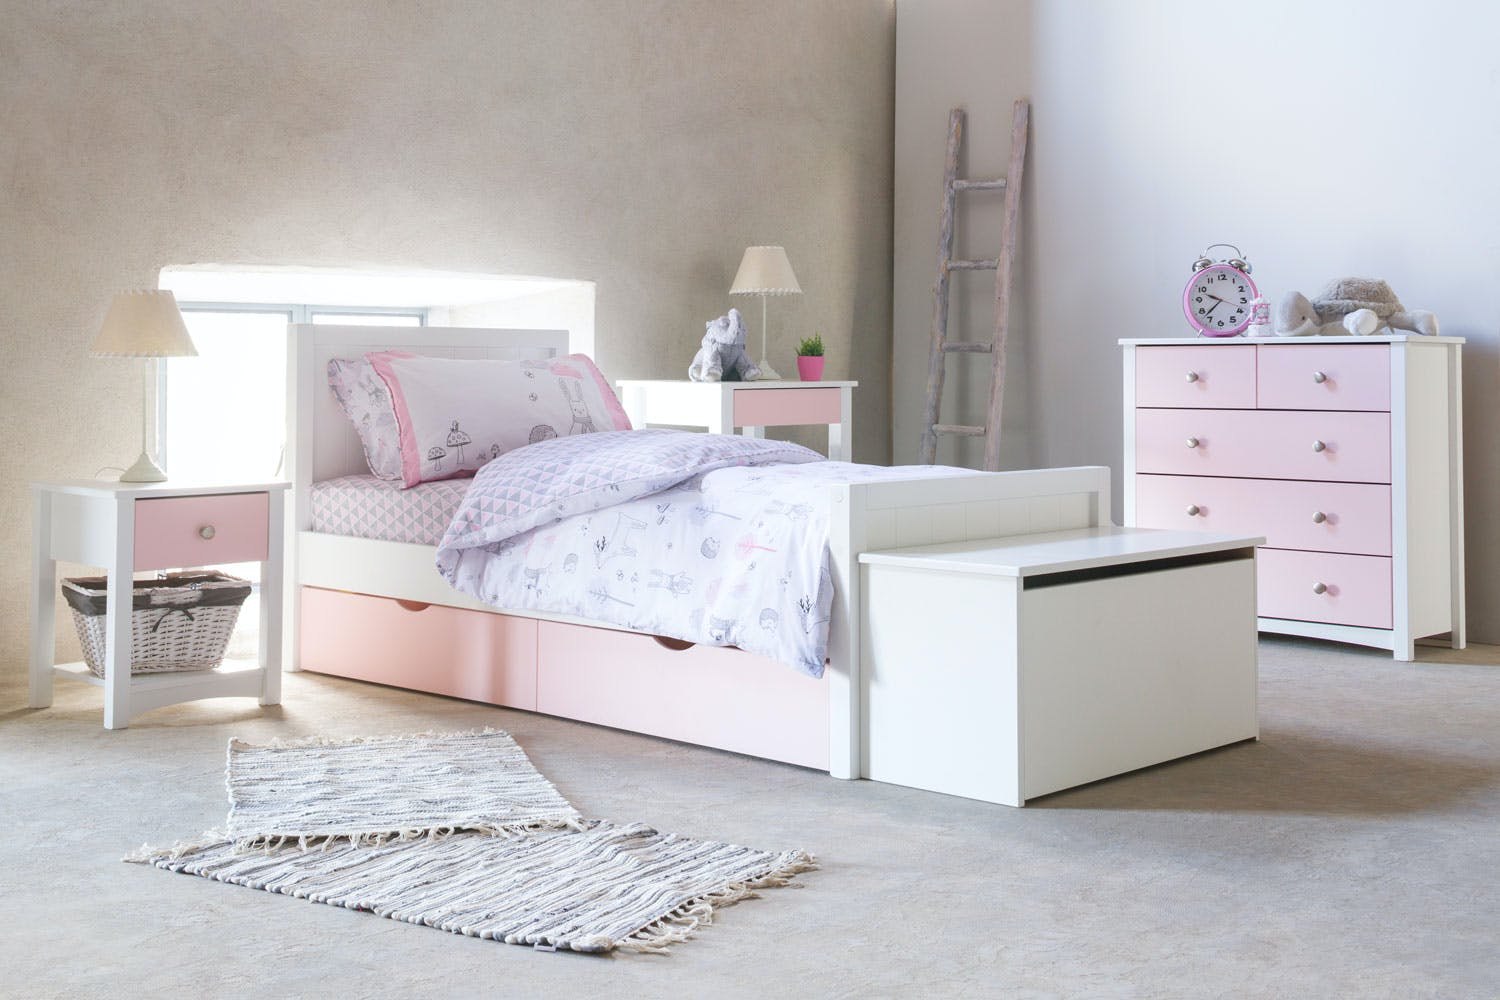 open originalnew cheap white solo charlston underbed bed charleston lou sizes for liv guest sale with single beds